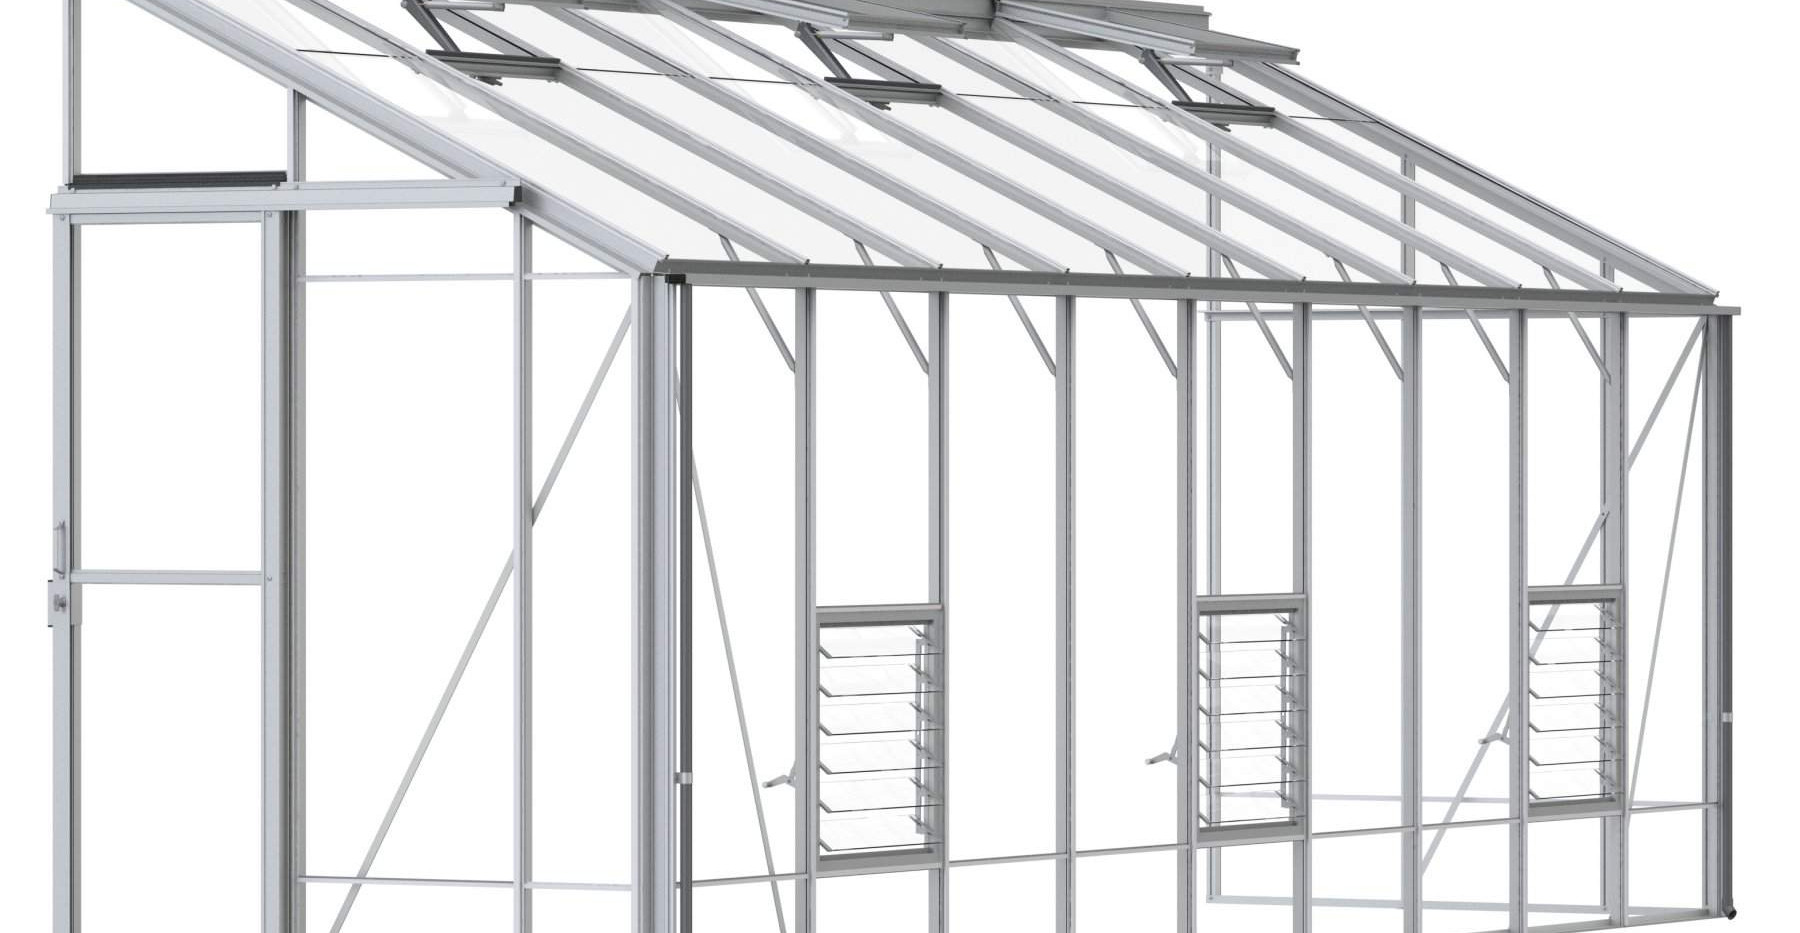 Robinsons Lean-To 5'4 deep Aluminium Greenhouse